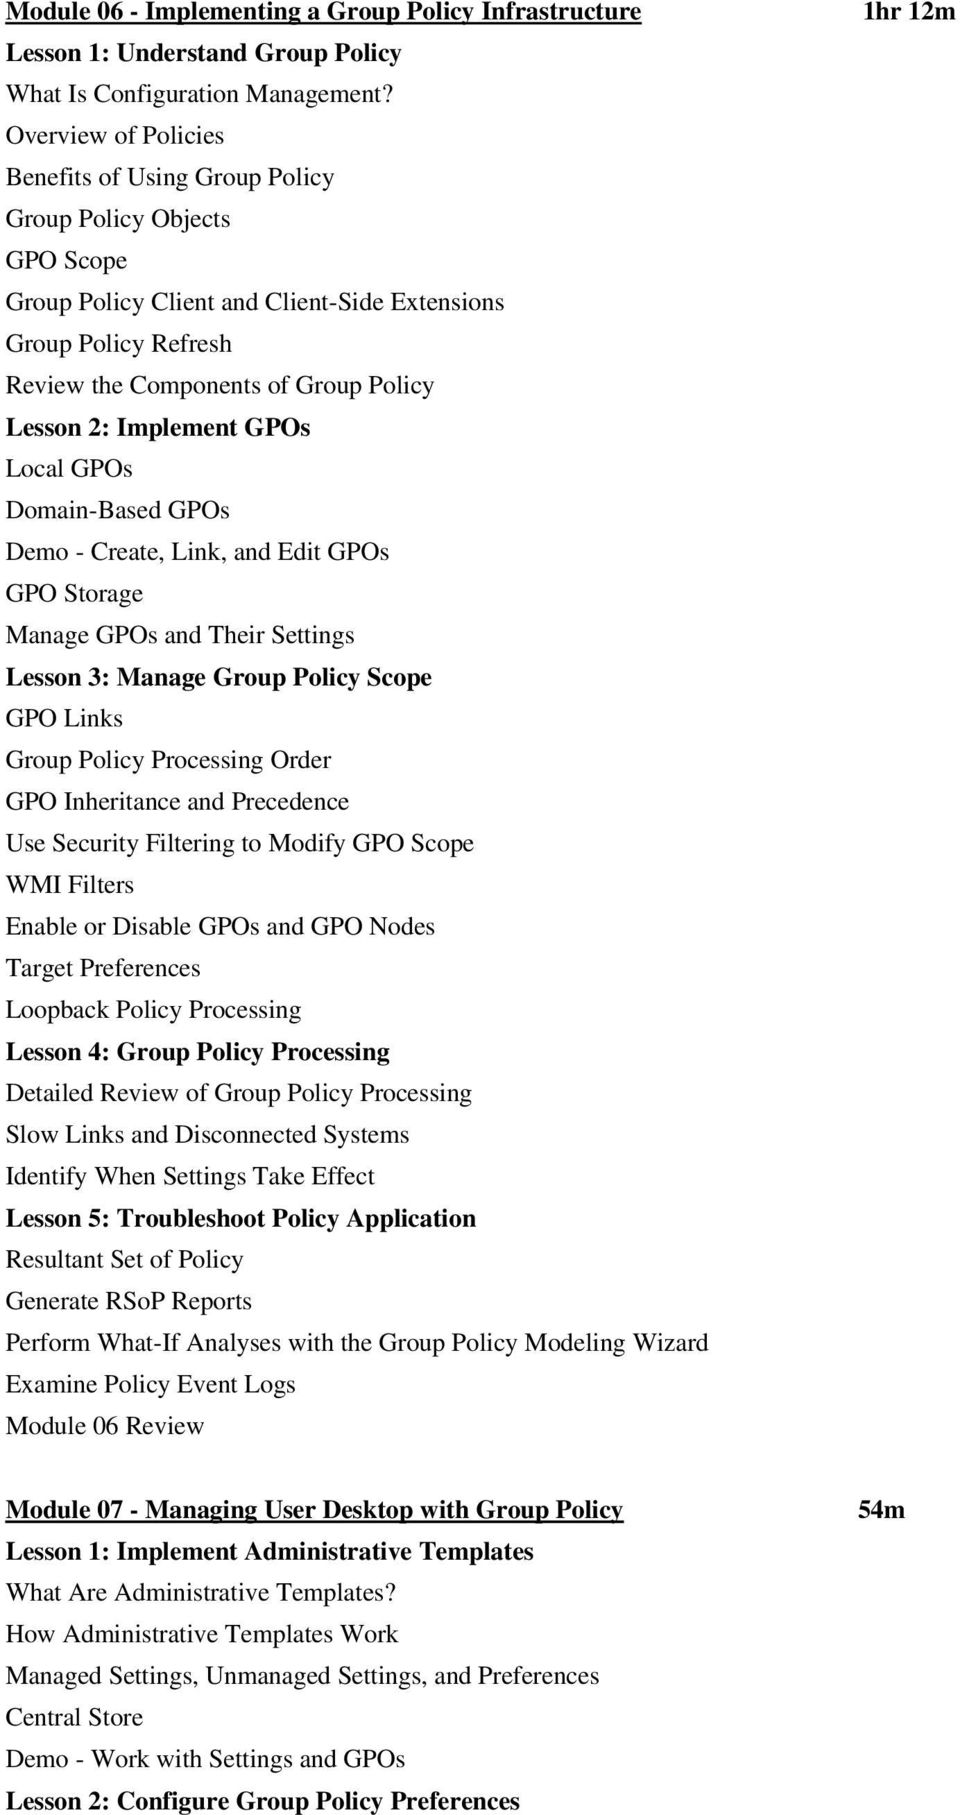 Implement GPOs Local GPOs Domain-Based GPOs Demo - Create, Link, and Edit GPOs GPO Storage Manage GPOs and Their Settings Lesson 3: Manage Group Policy Scope GPO Links Group Policy Processing Order